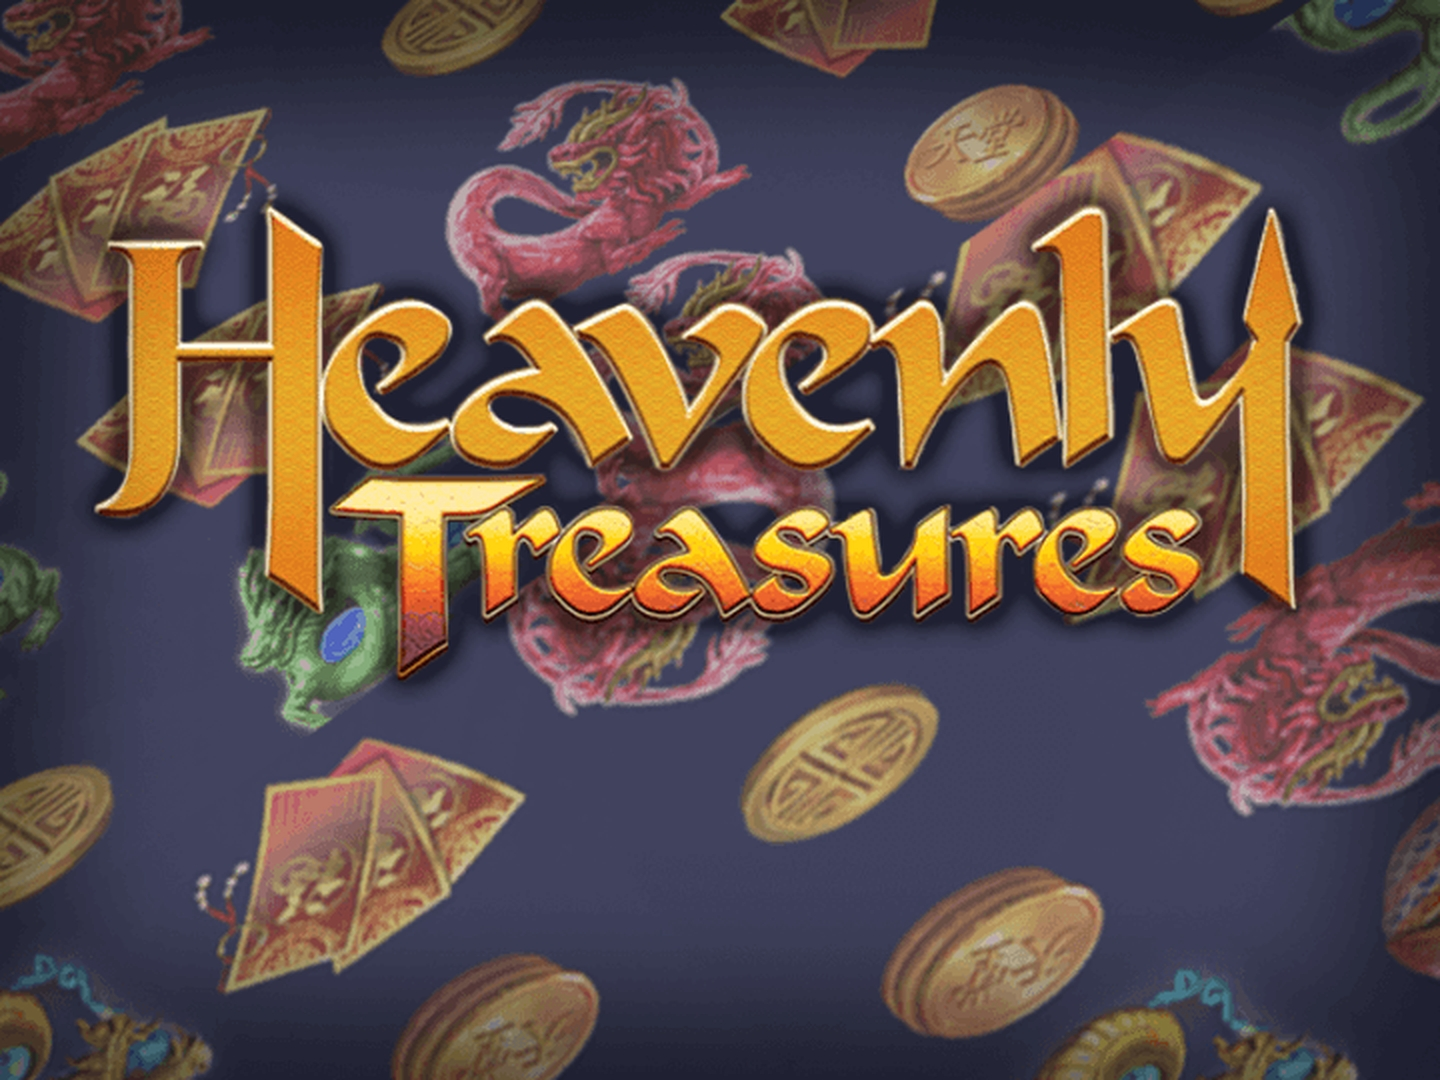 The Heavenly Treasures Online Slot Demo Game by Real Time Gaming